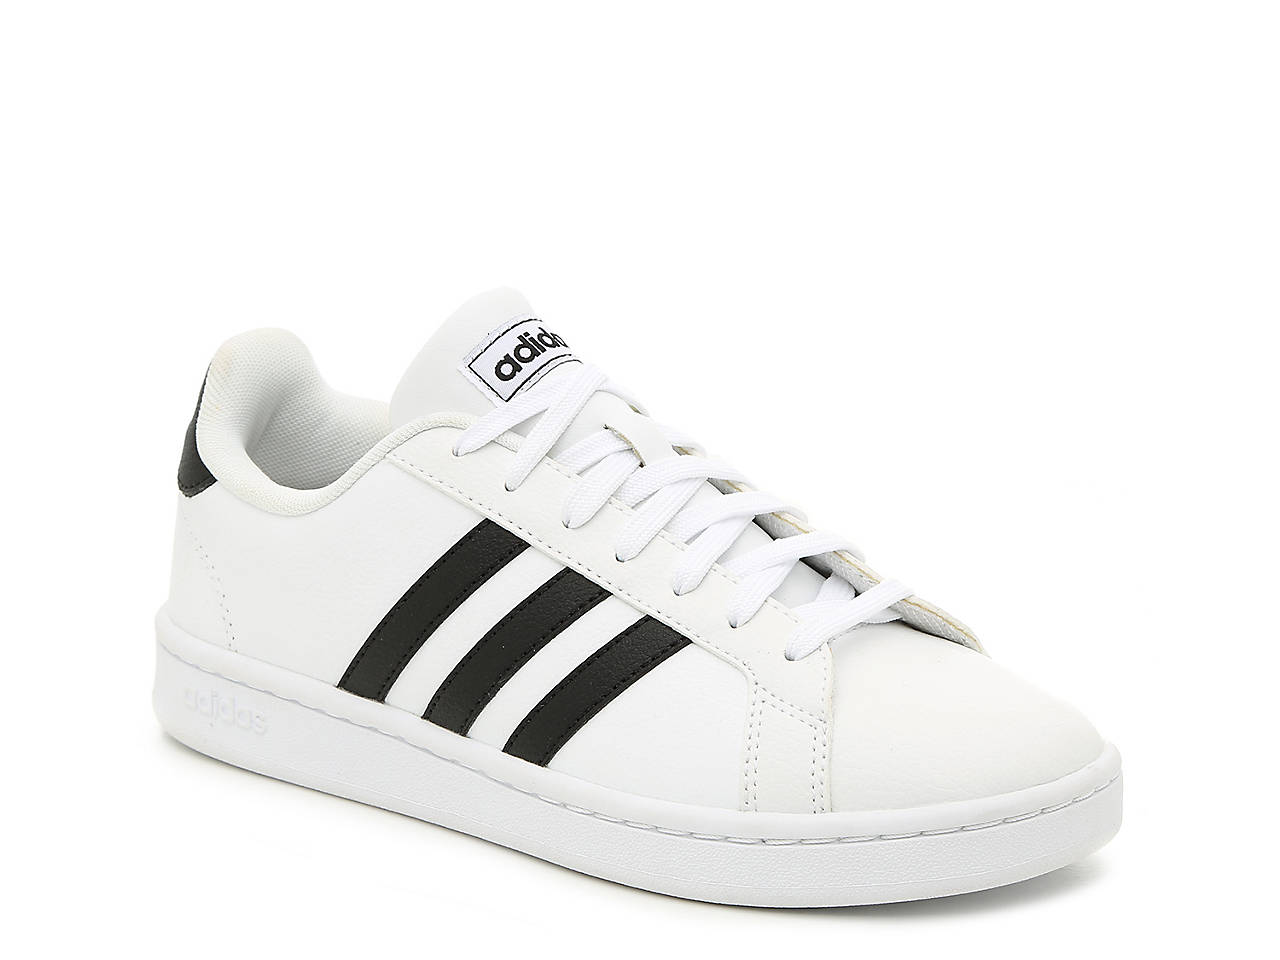 bdcb7f249398 adidas Grand Court Sneaker - Women s Women s Shoes